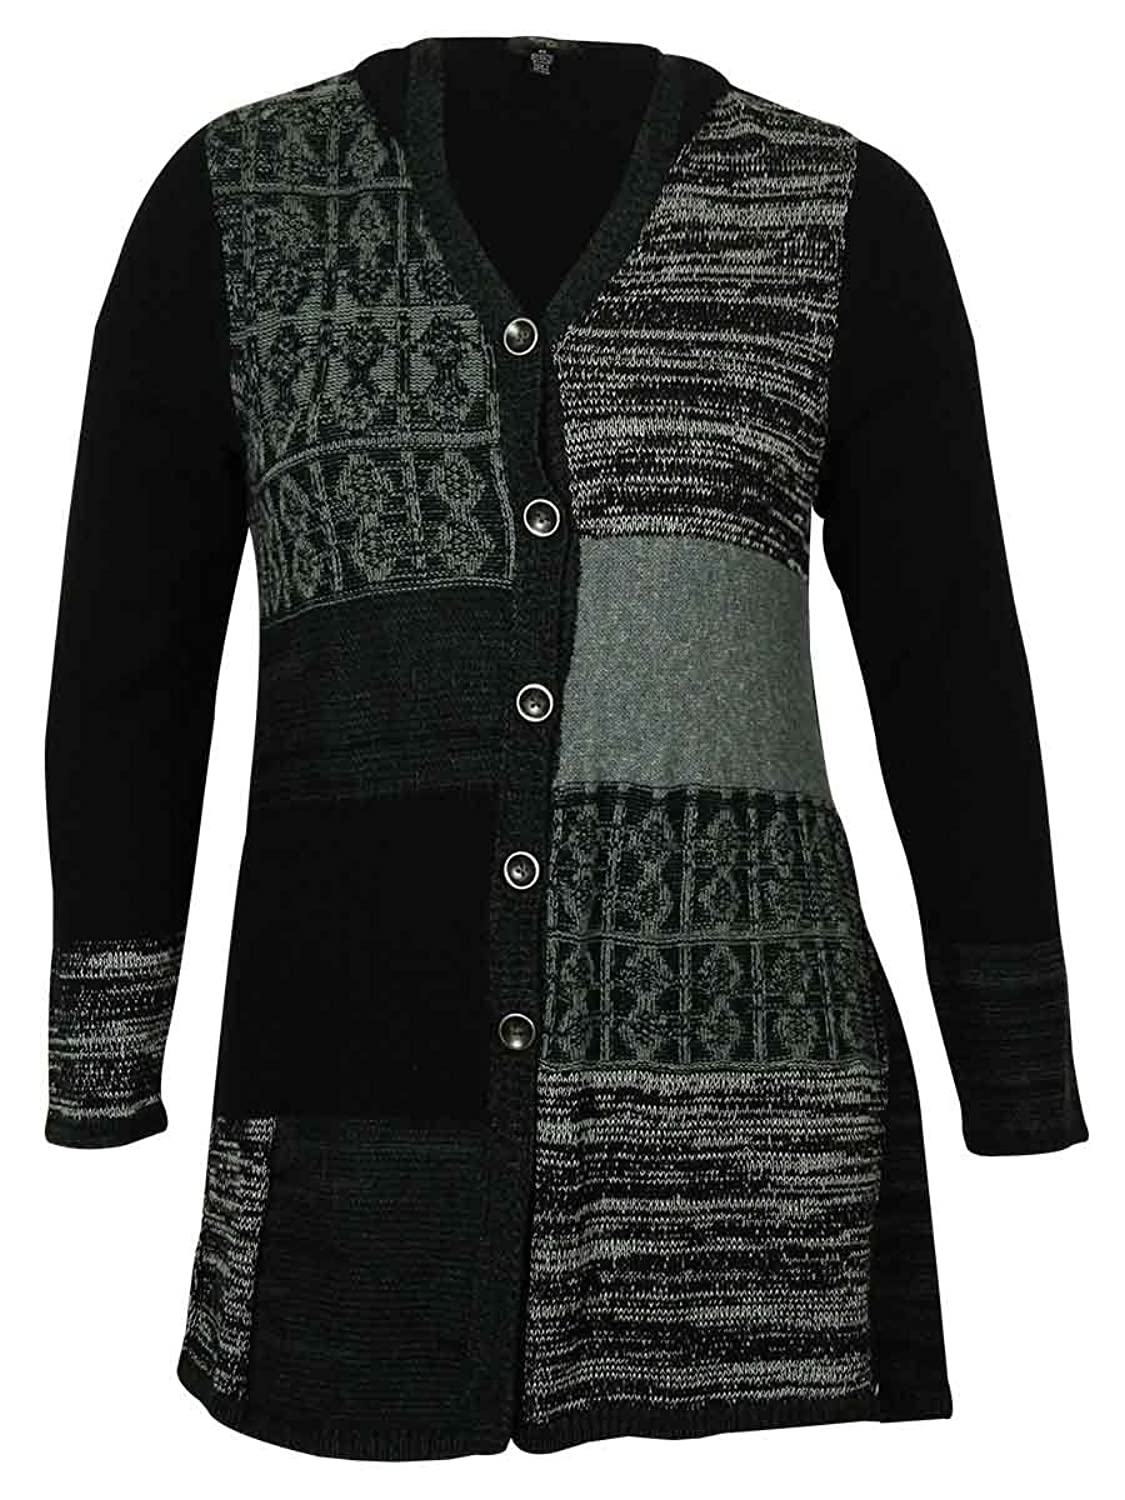 Style & Co Women's Patchworked Button-Down Sweater (Grey Combo, L)